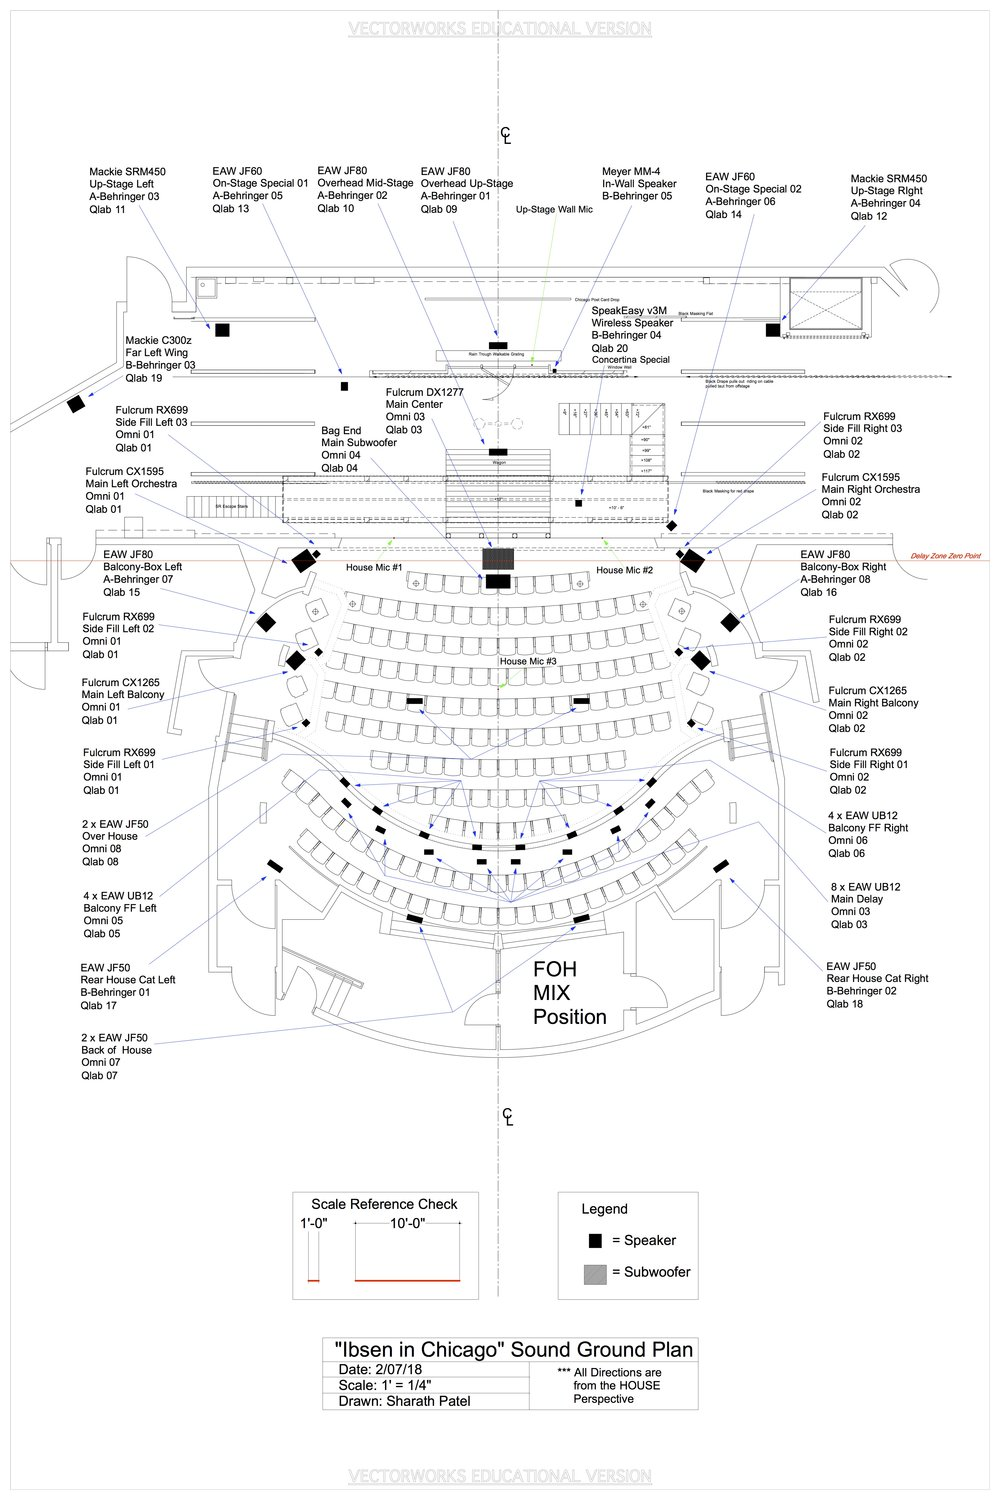 03 IBSEN Sound Ground Plan 2-07-18 ARCH-Dsize.jpg